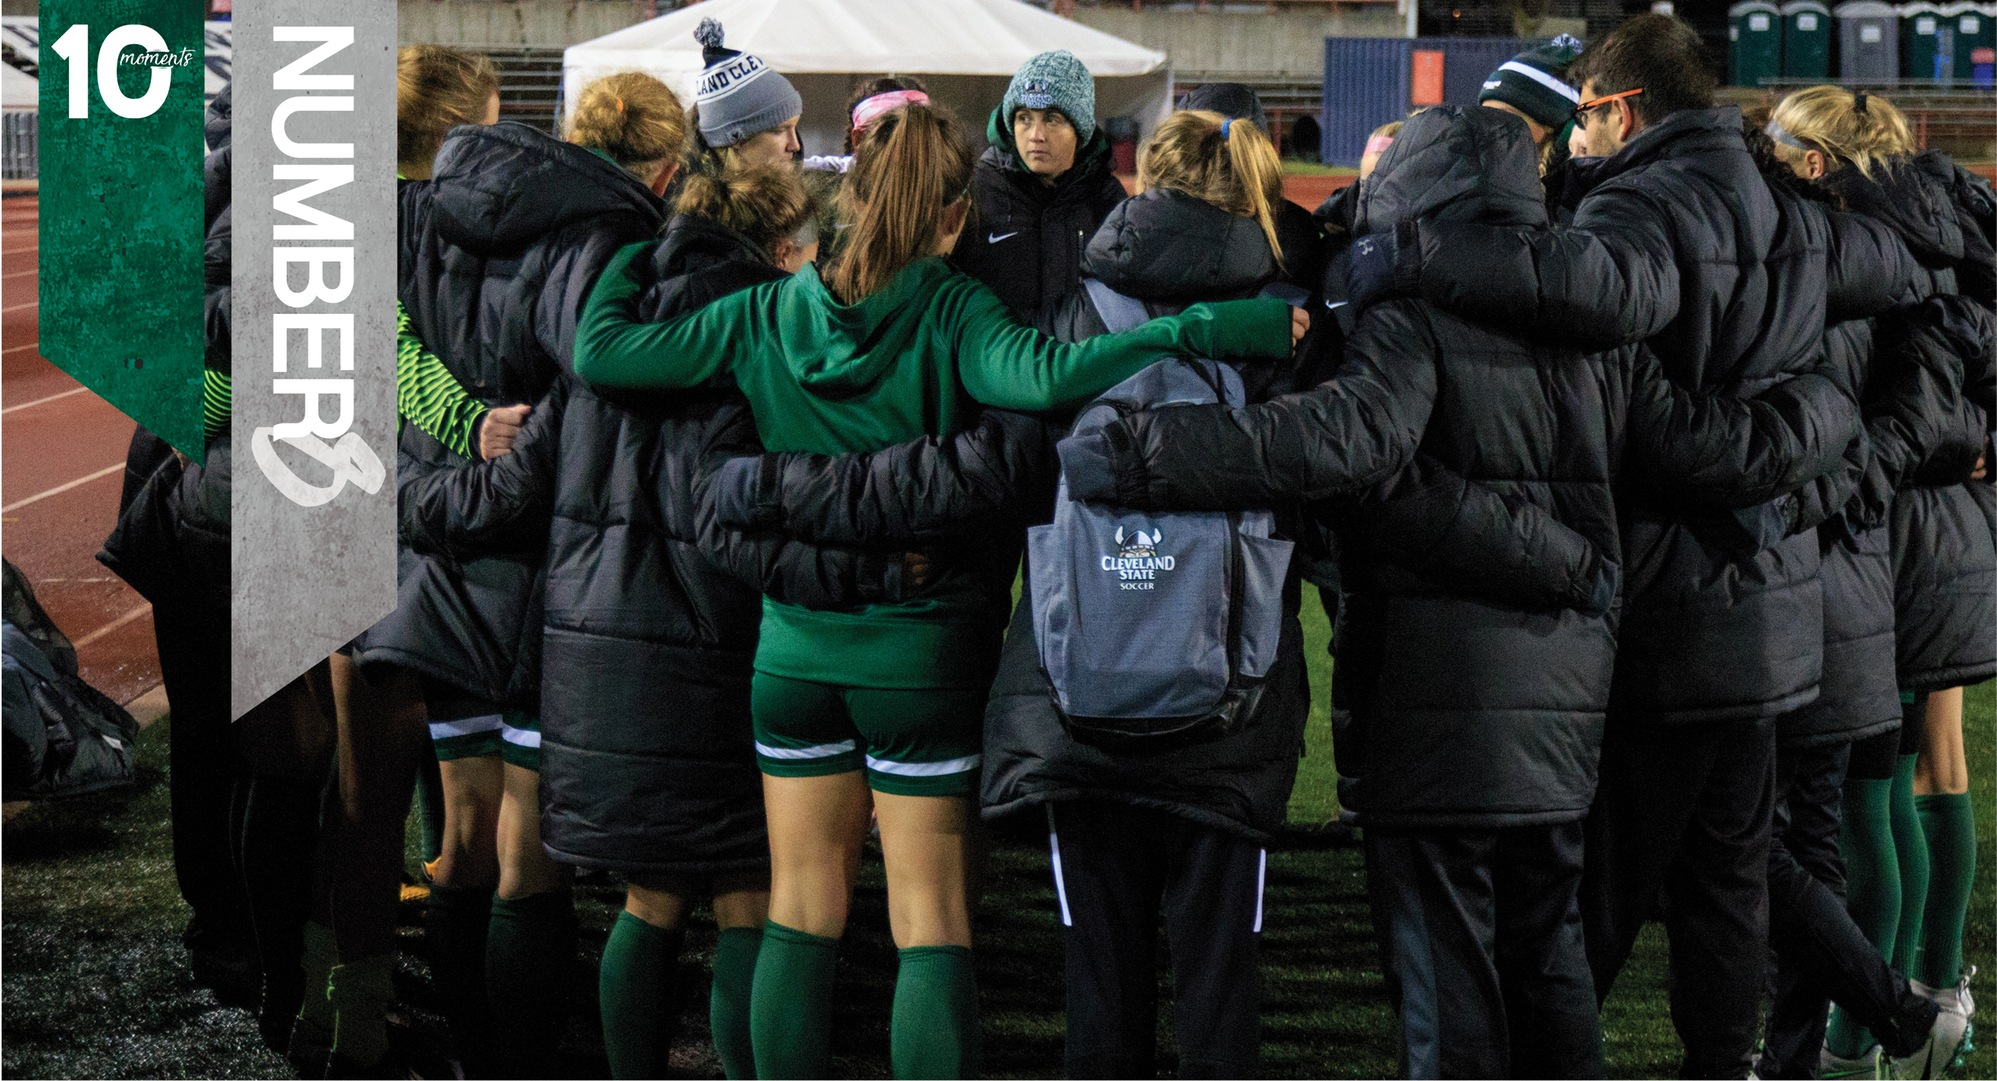 2017-18 CSU Athletics Top 10 Moments | #8 - Women's Soccer Clinches HL Tourney Bid With Win at Northern Kentucky